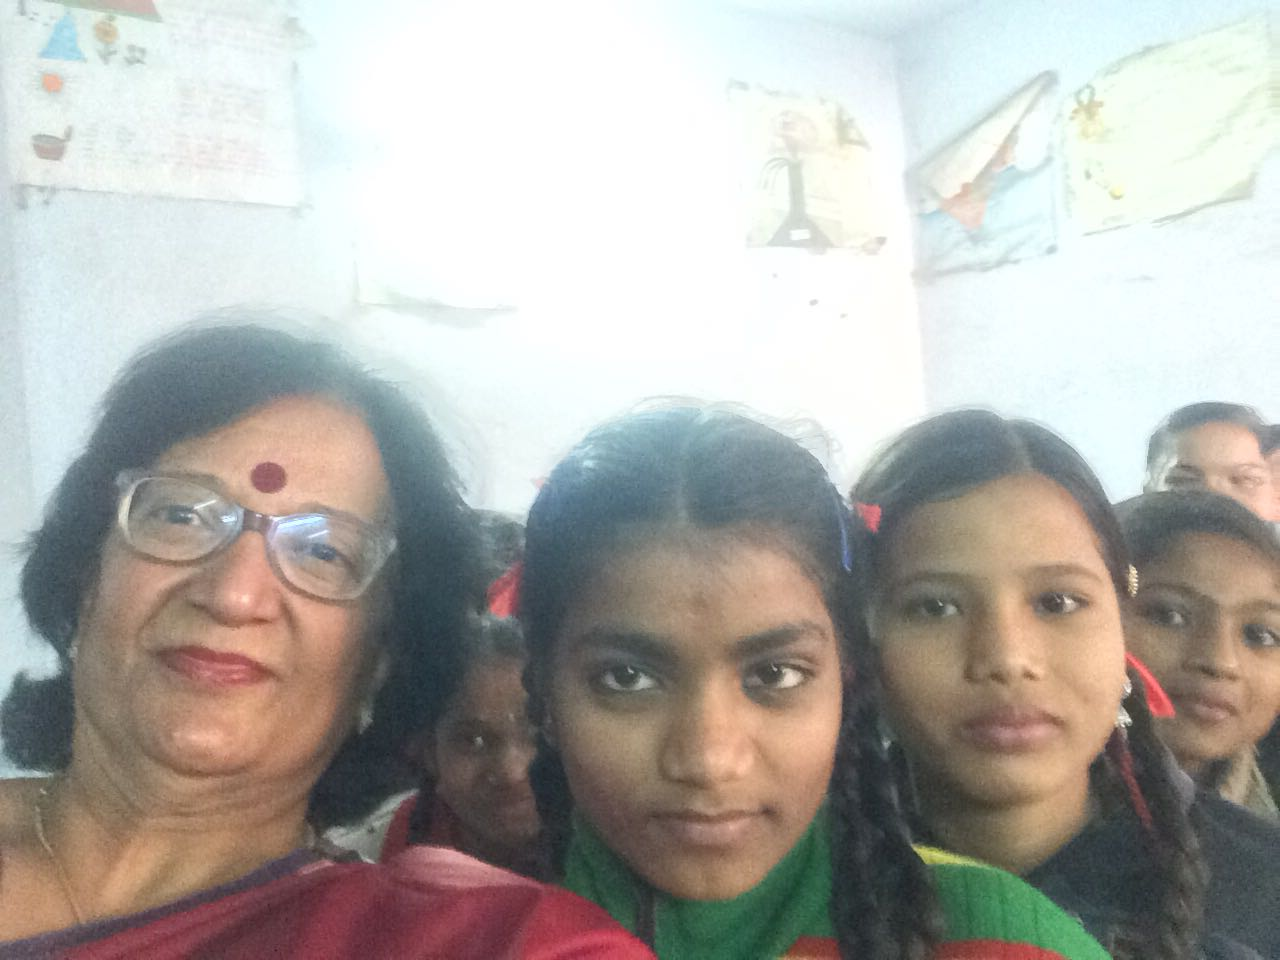 Fifth episode of Beti bachao Beti padhao aur use samjhao in gov girls school khajrana indore , myself with dr Archana Shrivastav sunita Saxena & firdose Nahid talked with girls & covered all points about protection ,awareness from sexual abuse